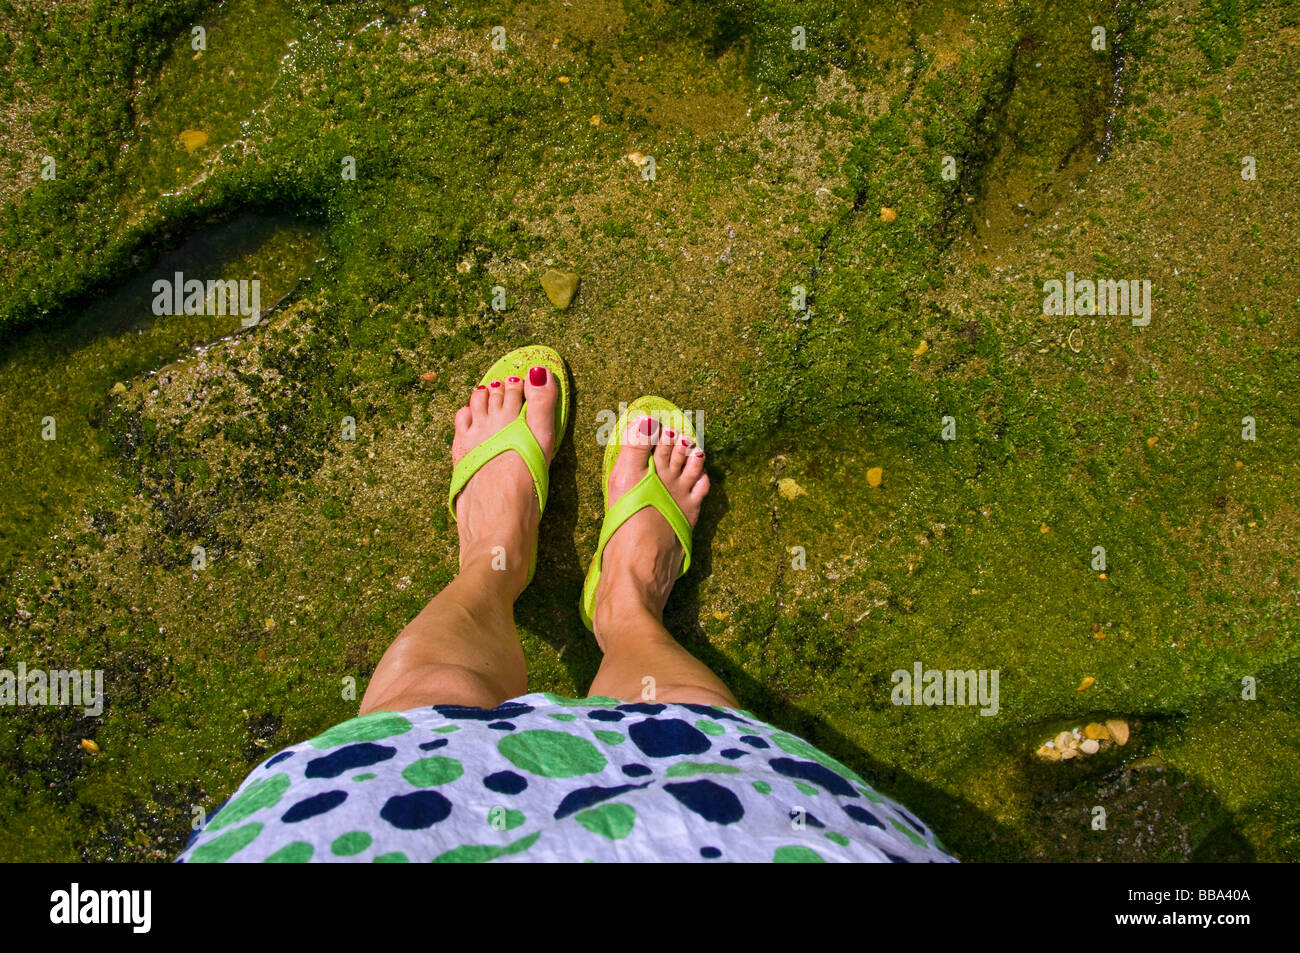 Vacations - Stock Image